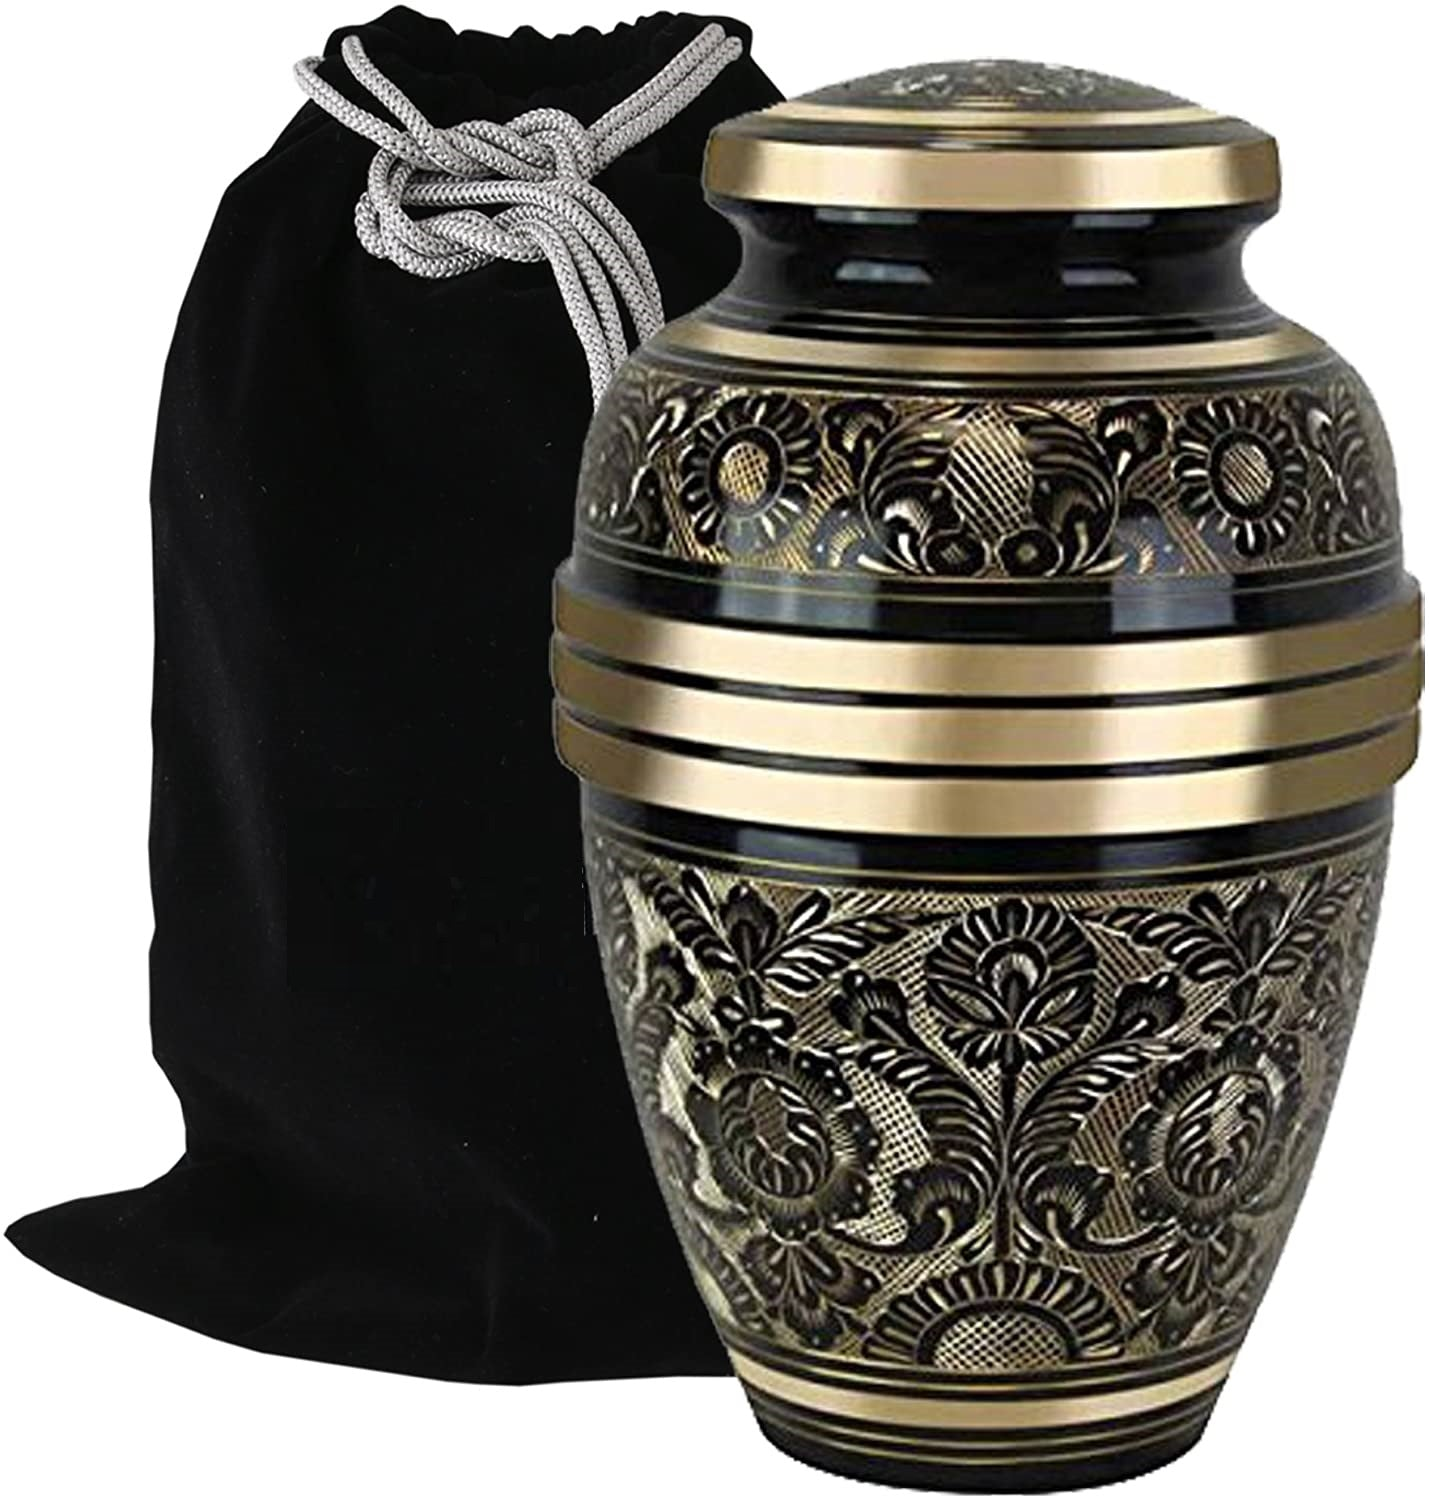 Elegant Aura Cremation Urn in Black/Gold - Adult Brass & Metal Urn for Ashes